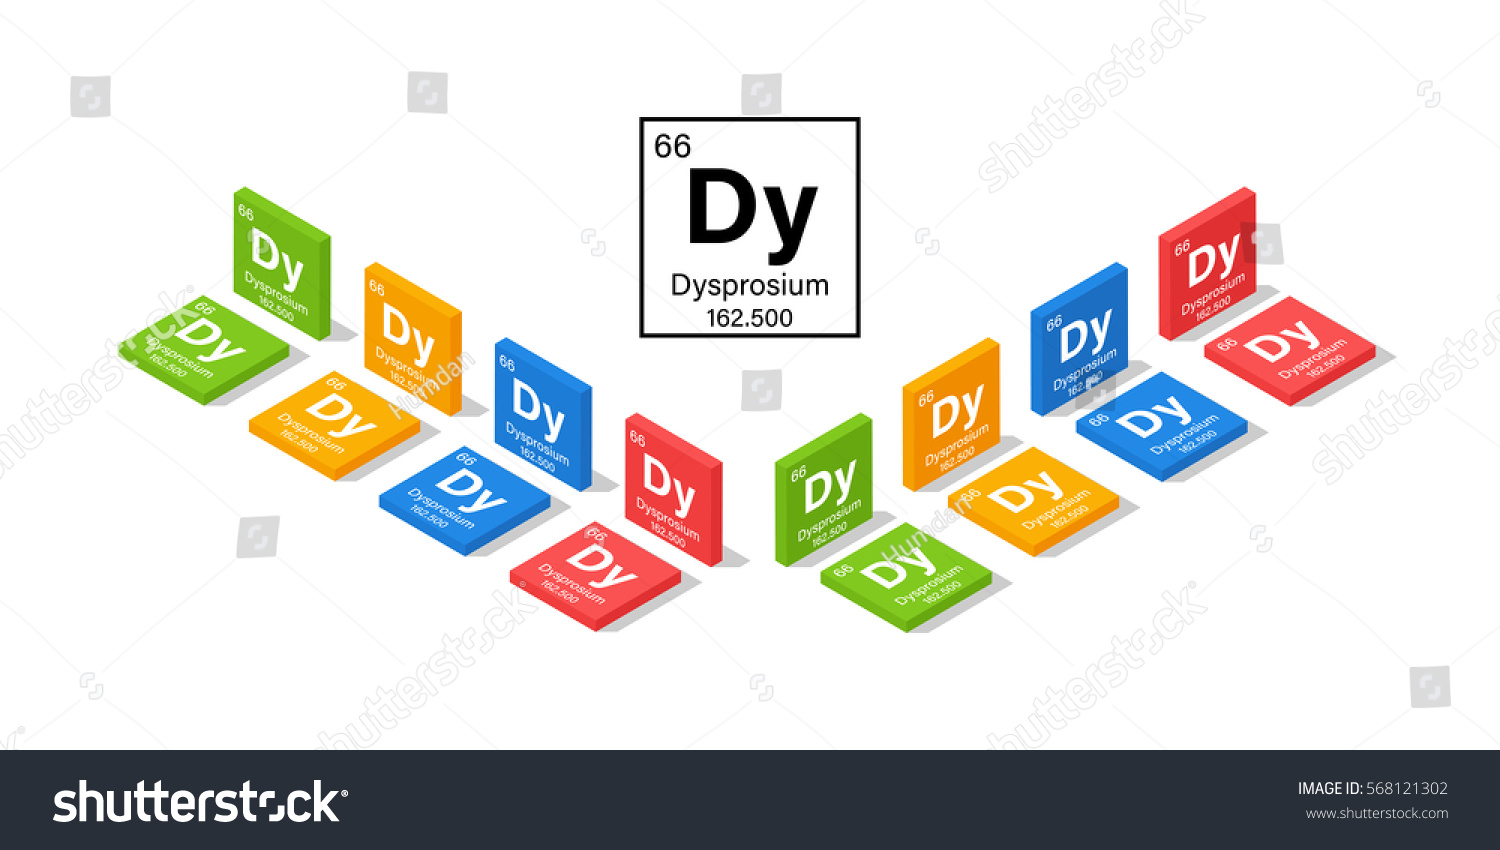 Periodic table dysprosium choice image periodic table images periodic table dysprosium image collections periodic table images periodic table dysprosium choice image periodic table images gamestrikefo Image collections